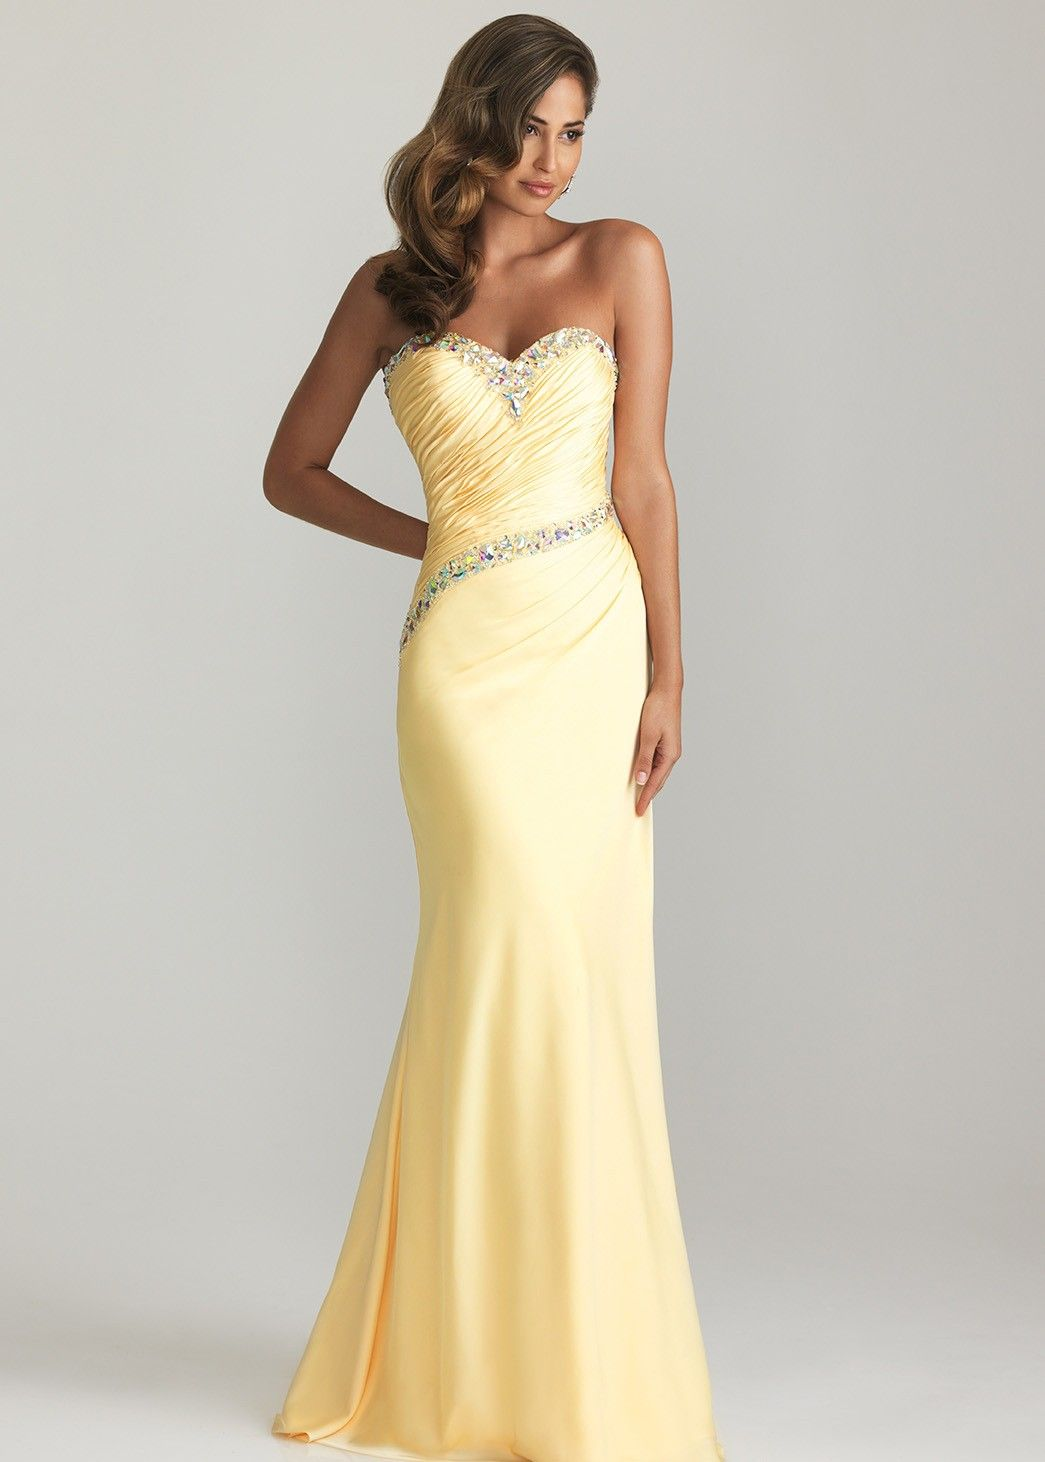 Beautifully Beaded Yellow Strapless Prom Dress - Evening Gown - Night Moves 6608 - RissyRoos.com